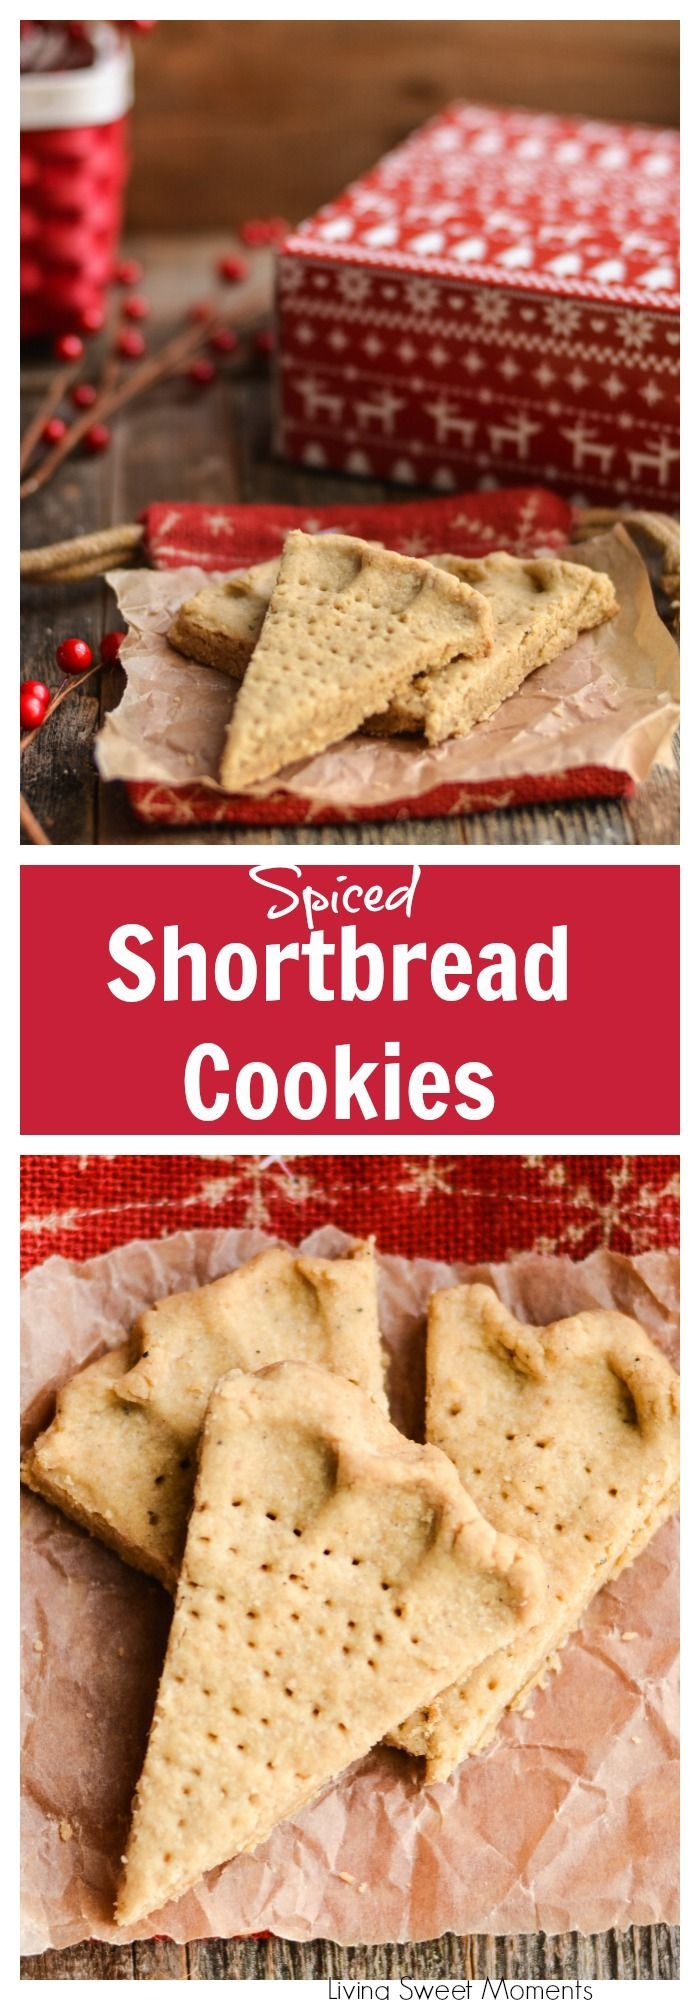 These crumbly Holiday Spiced Shortbread Cookies are super delicious and easy to make. Cut into wedges, they are perfect for dessert or to dip in your coffee. More Christmas cookies recipes at http://livingsweetmoments.com  via @Livingsmoments